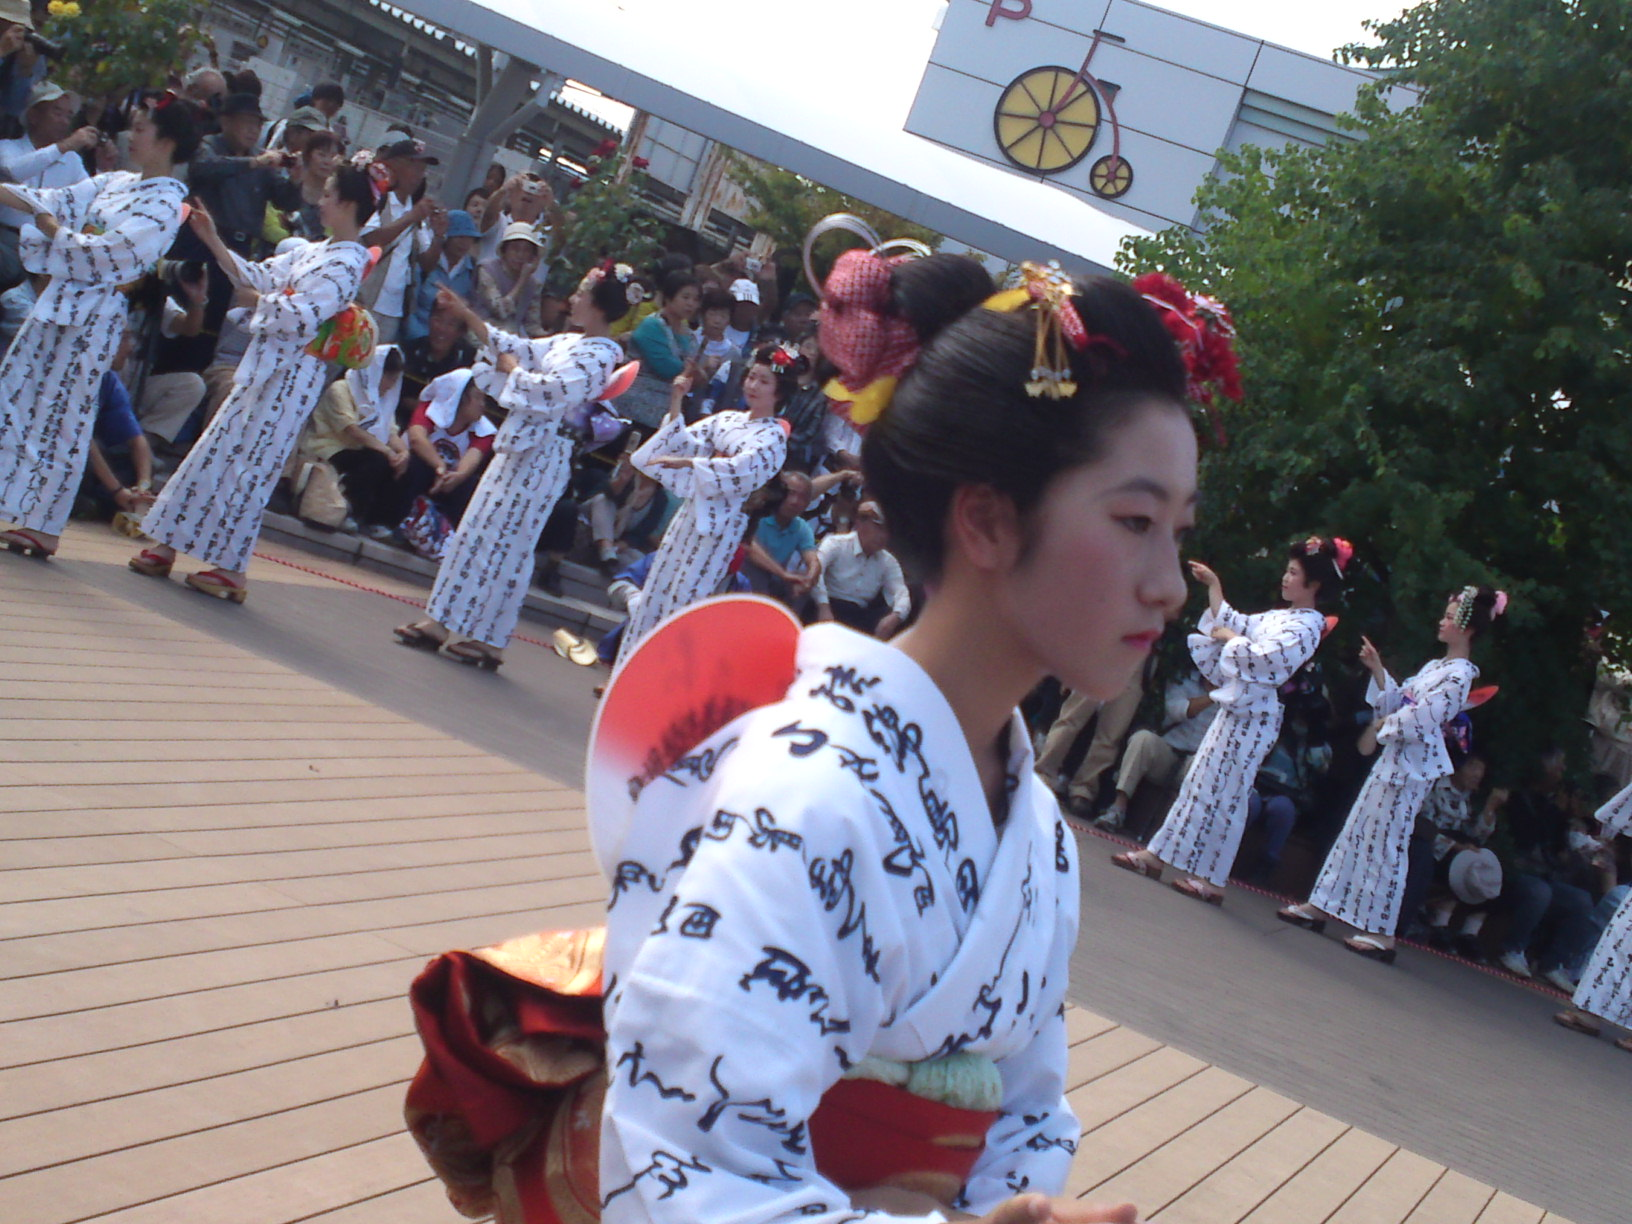 Shimada,hair,festival,hairstyle,style,knot,Japan,tourism